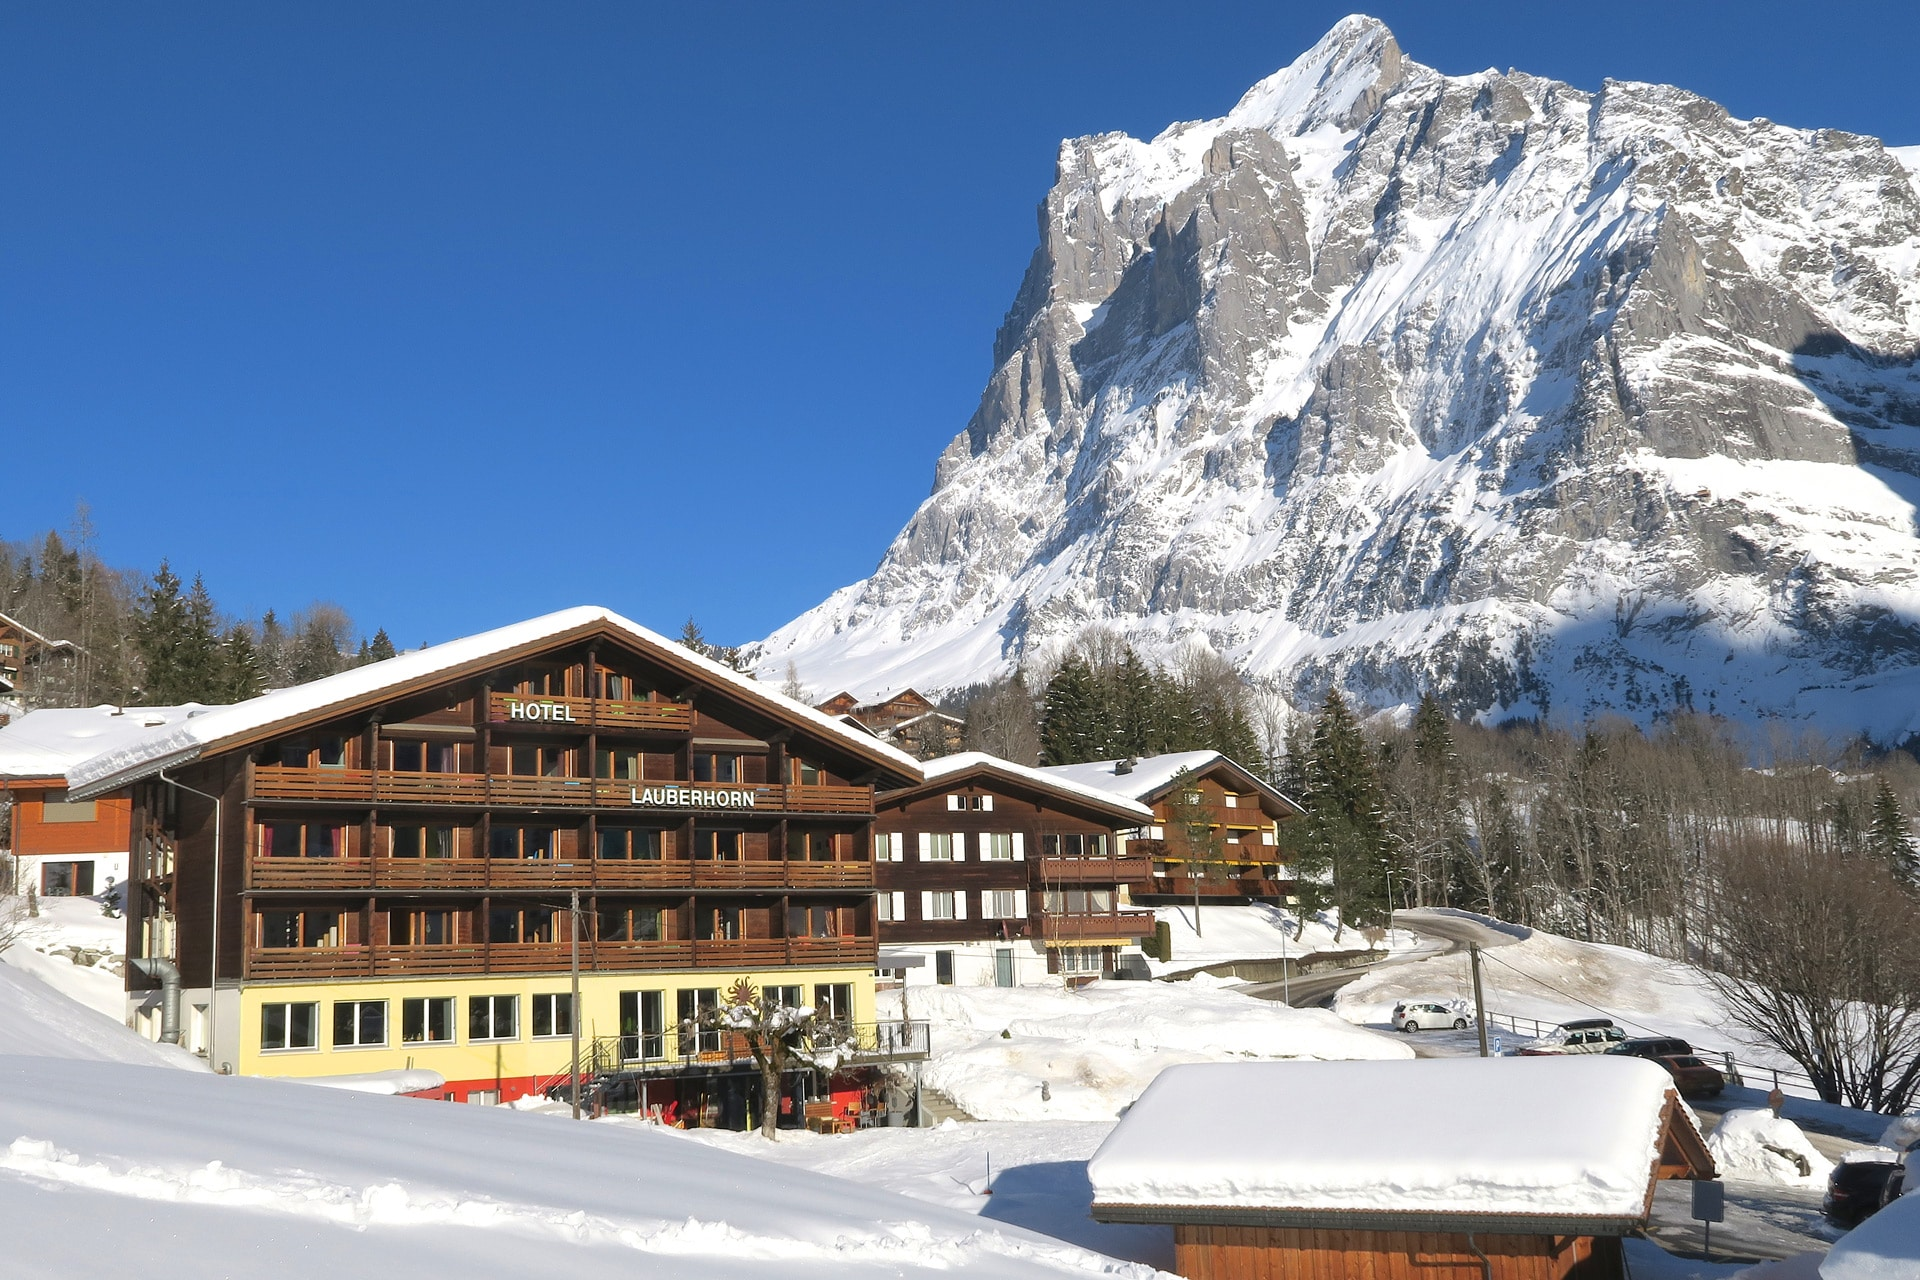 Bed & Breakfast Hotel in Grindelwald